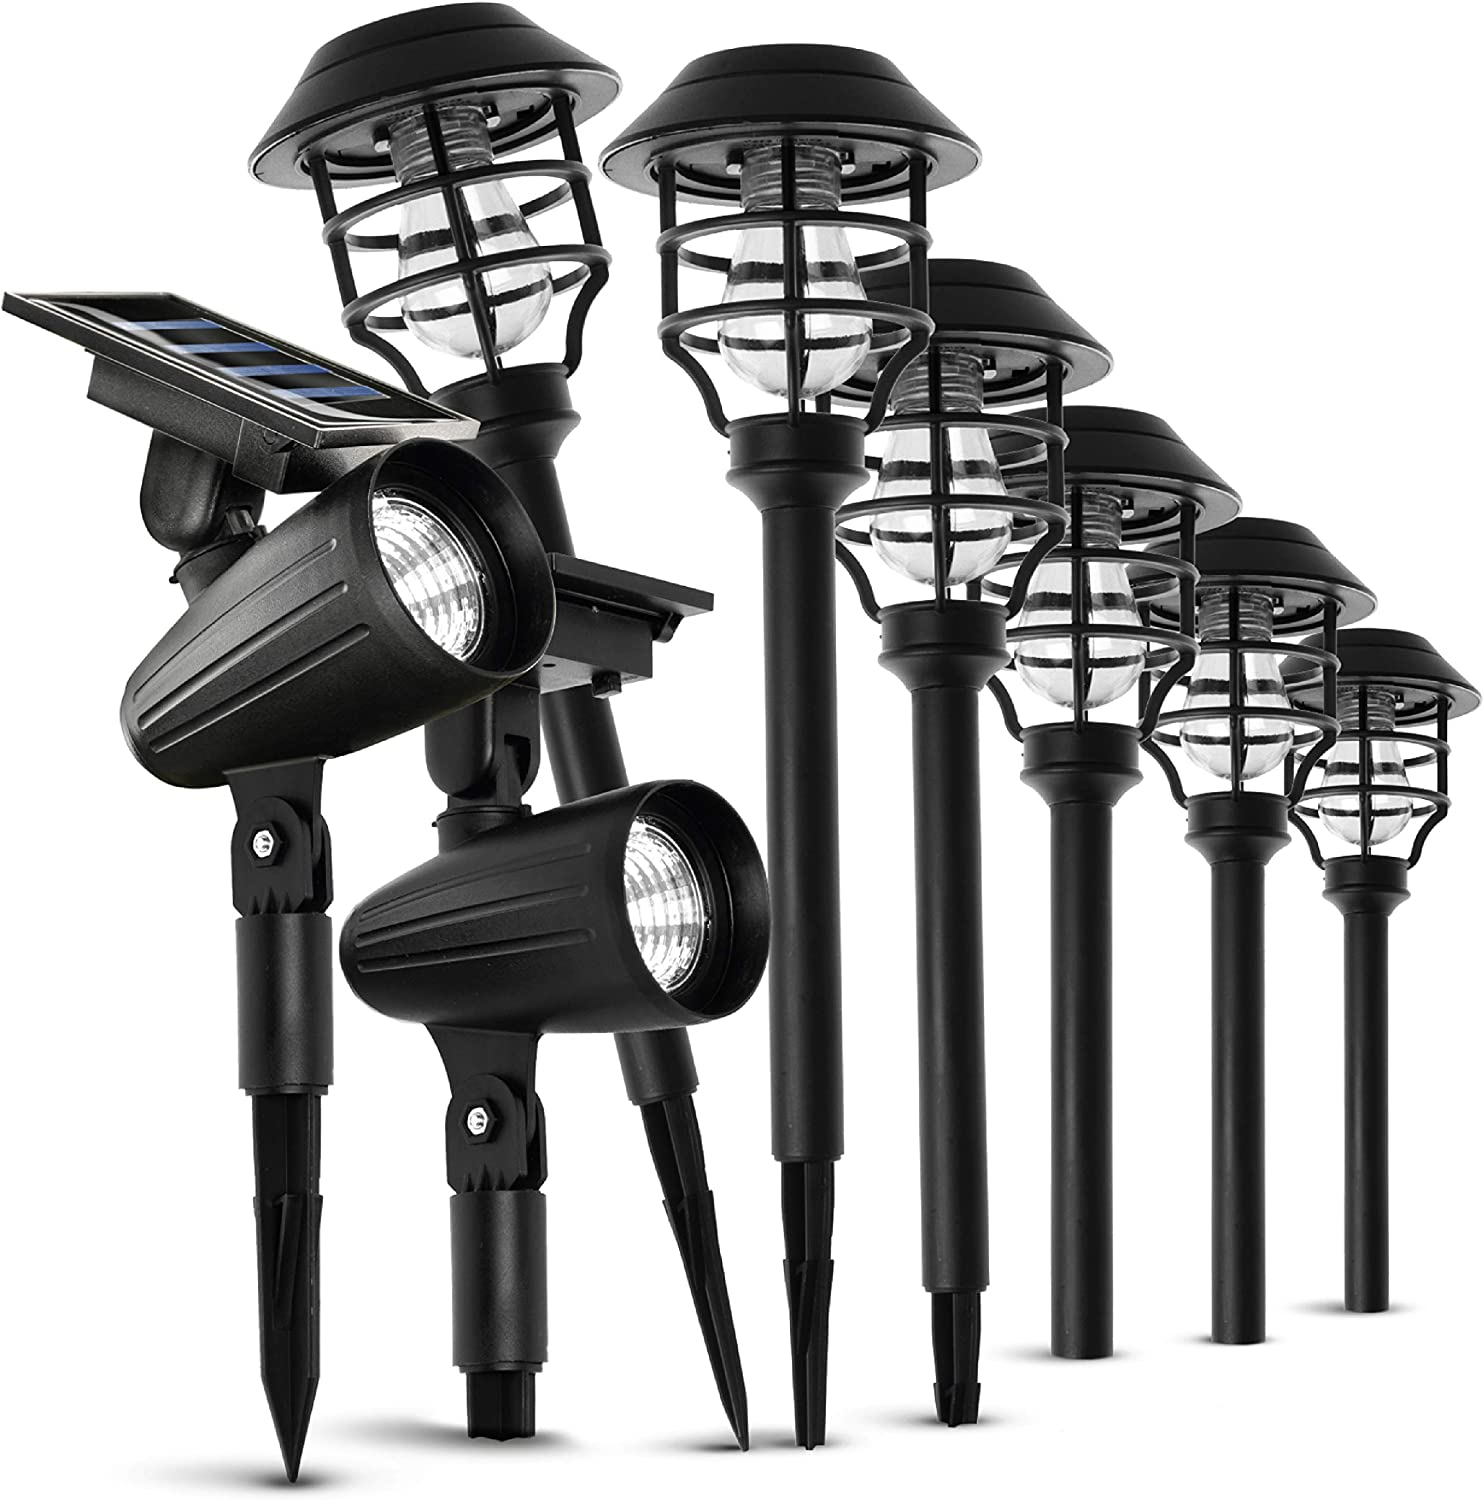 Home Zone Security Solar Path Lights - Outdoor Decorative Pathway Light and Spotlight Variety Pack, 8-Pack